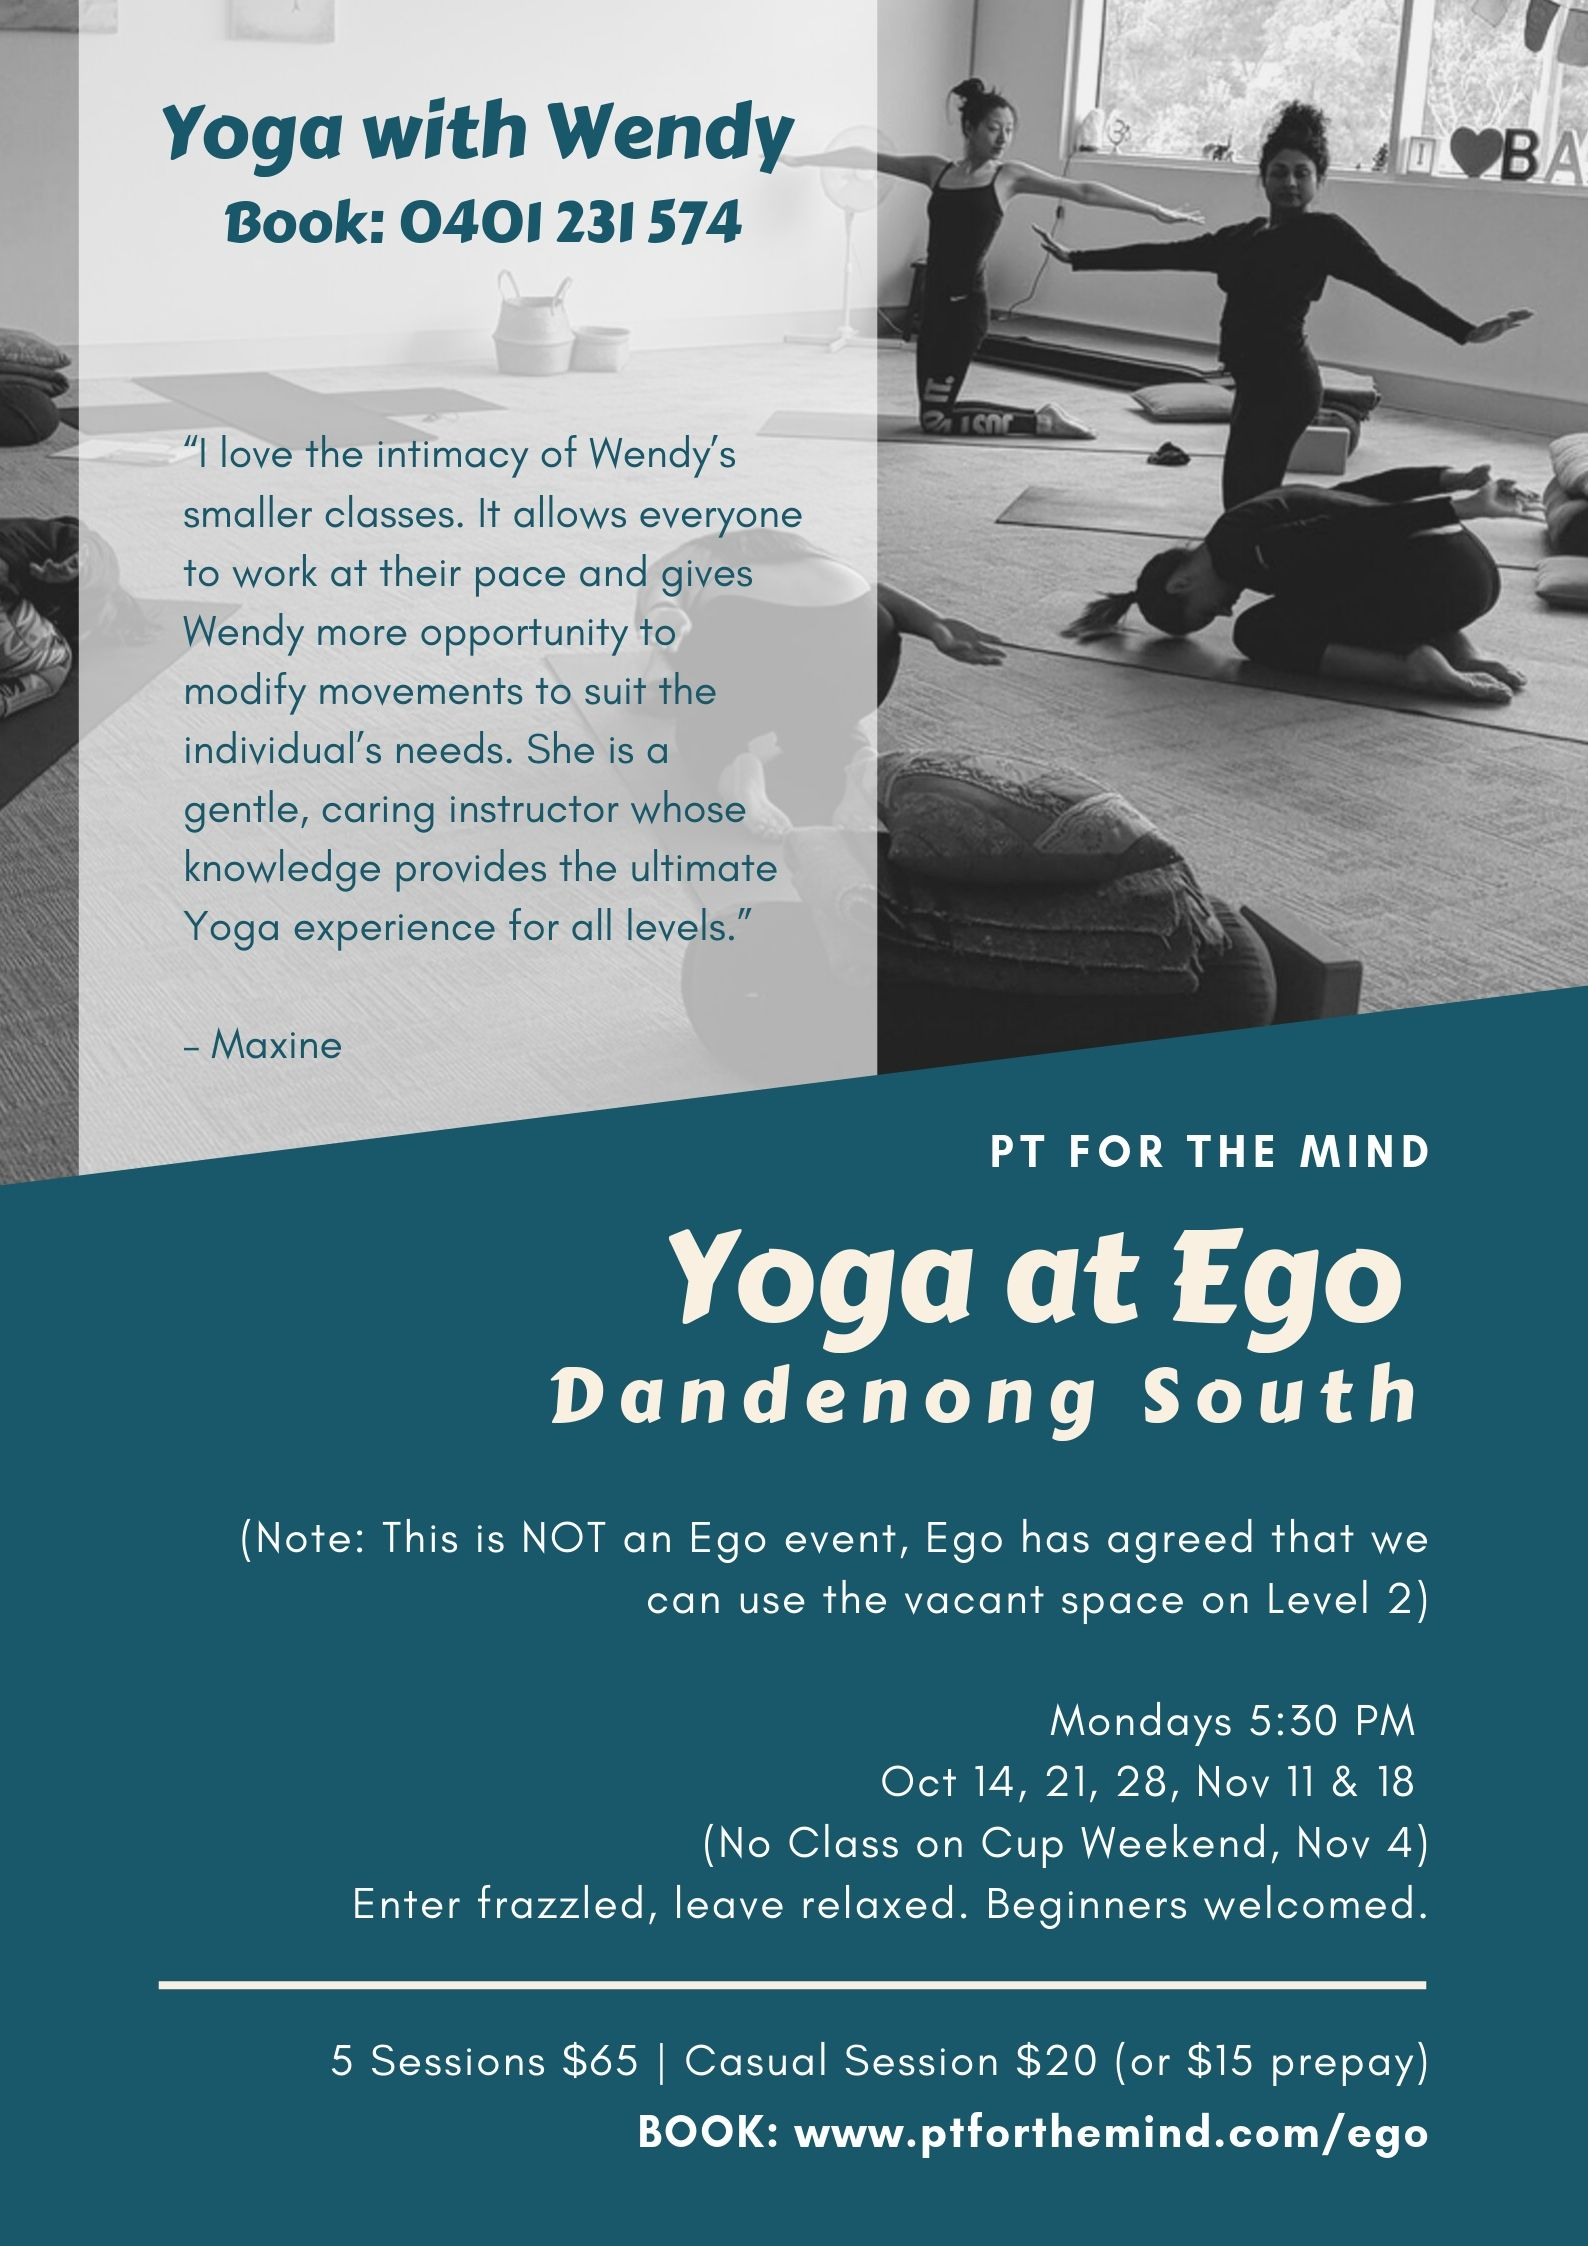 Yoga at Ego* - Mondays 5:30 - 6:30 pmNext 5 Session Block Starts: October 14*Note: This is NOT an Ego event, Ego has agreed that we can use the vacant space on Level 2. Only open to Ego Employees.